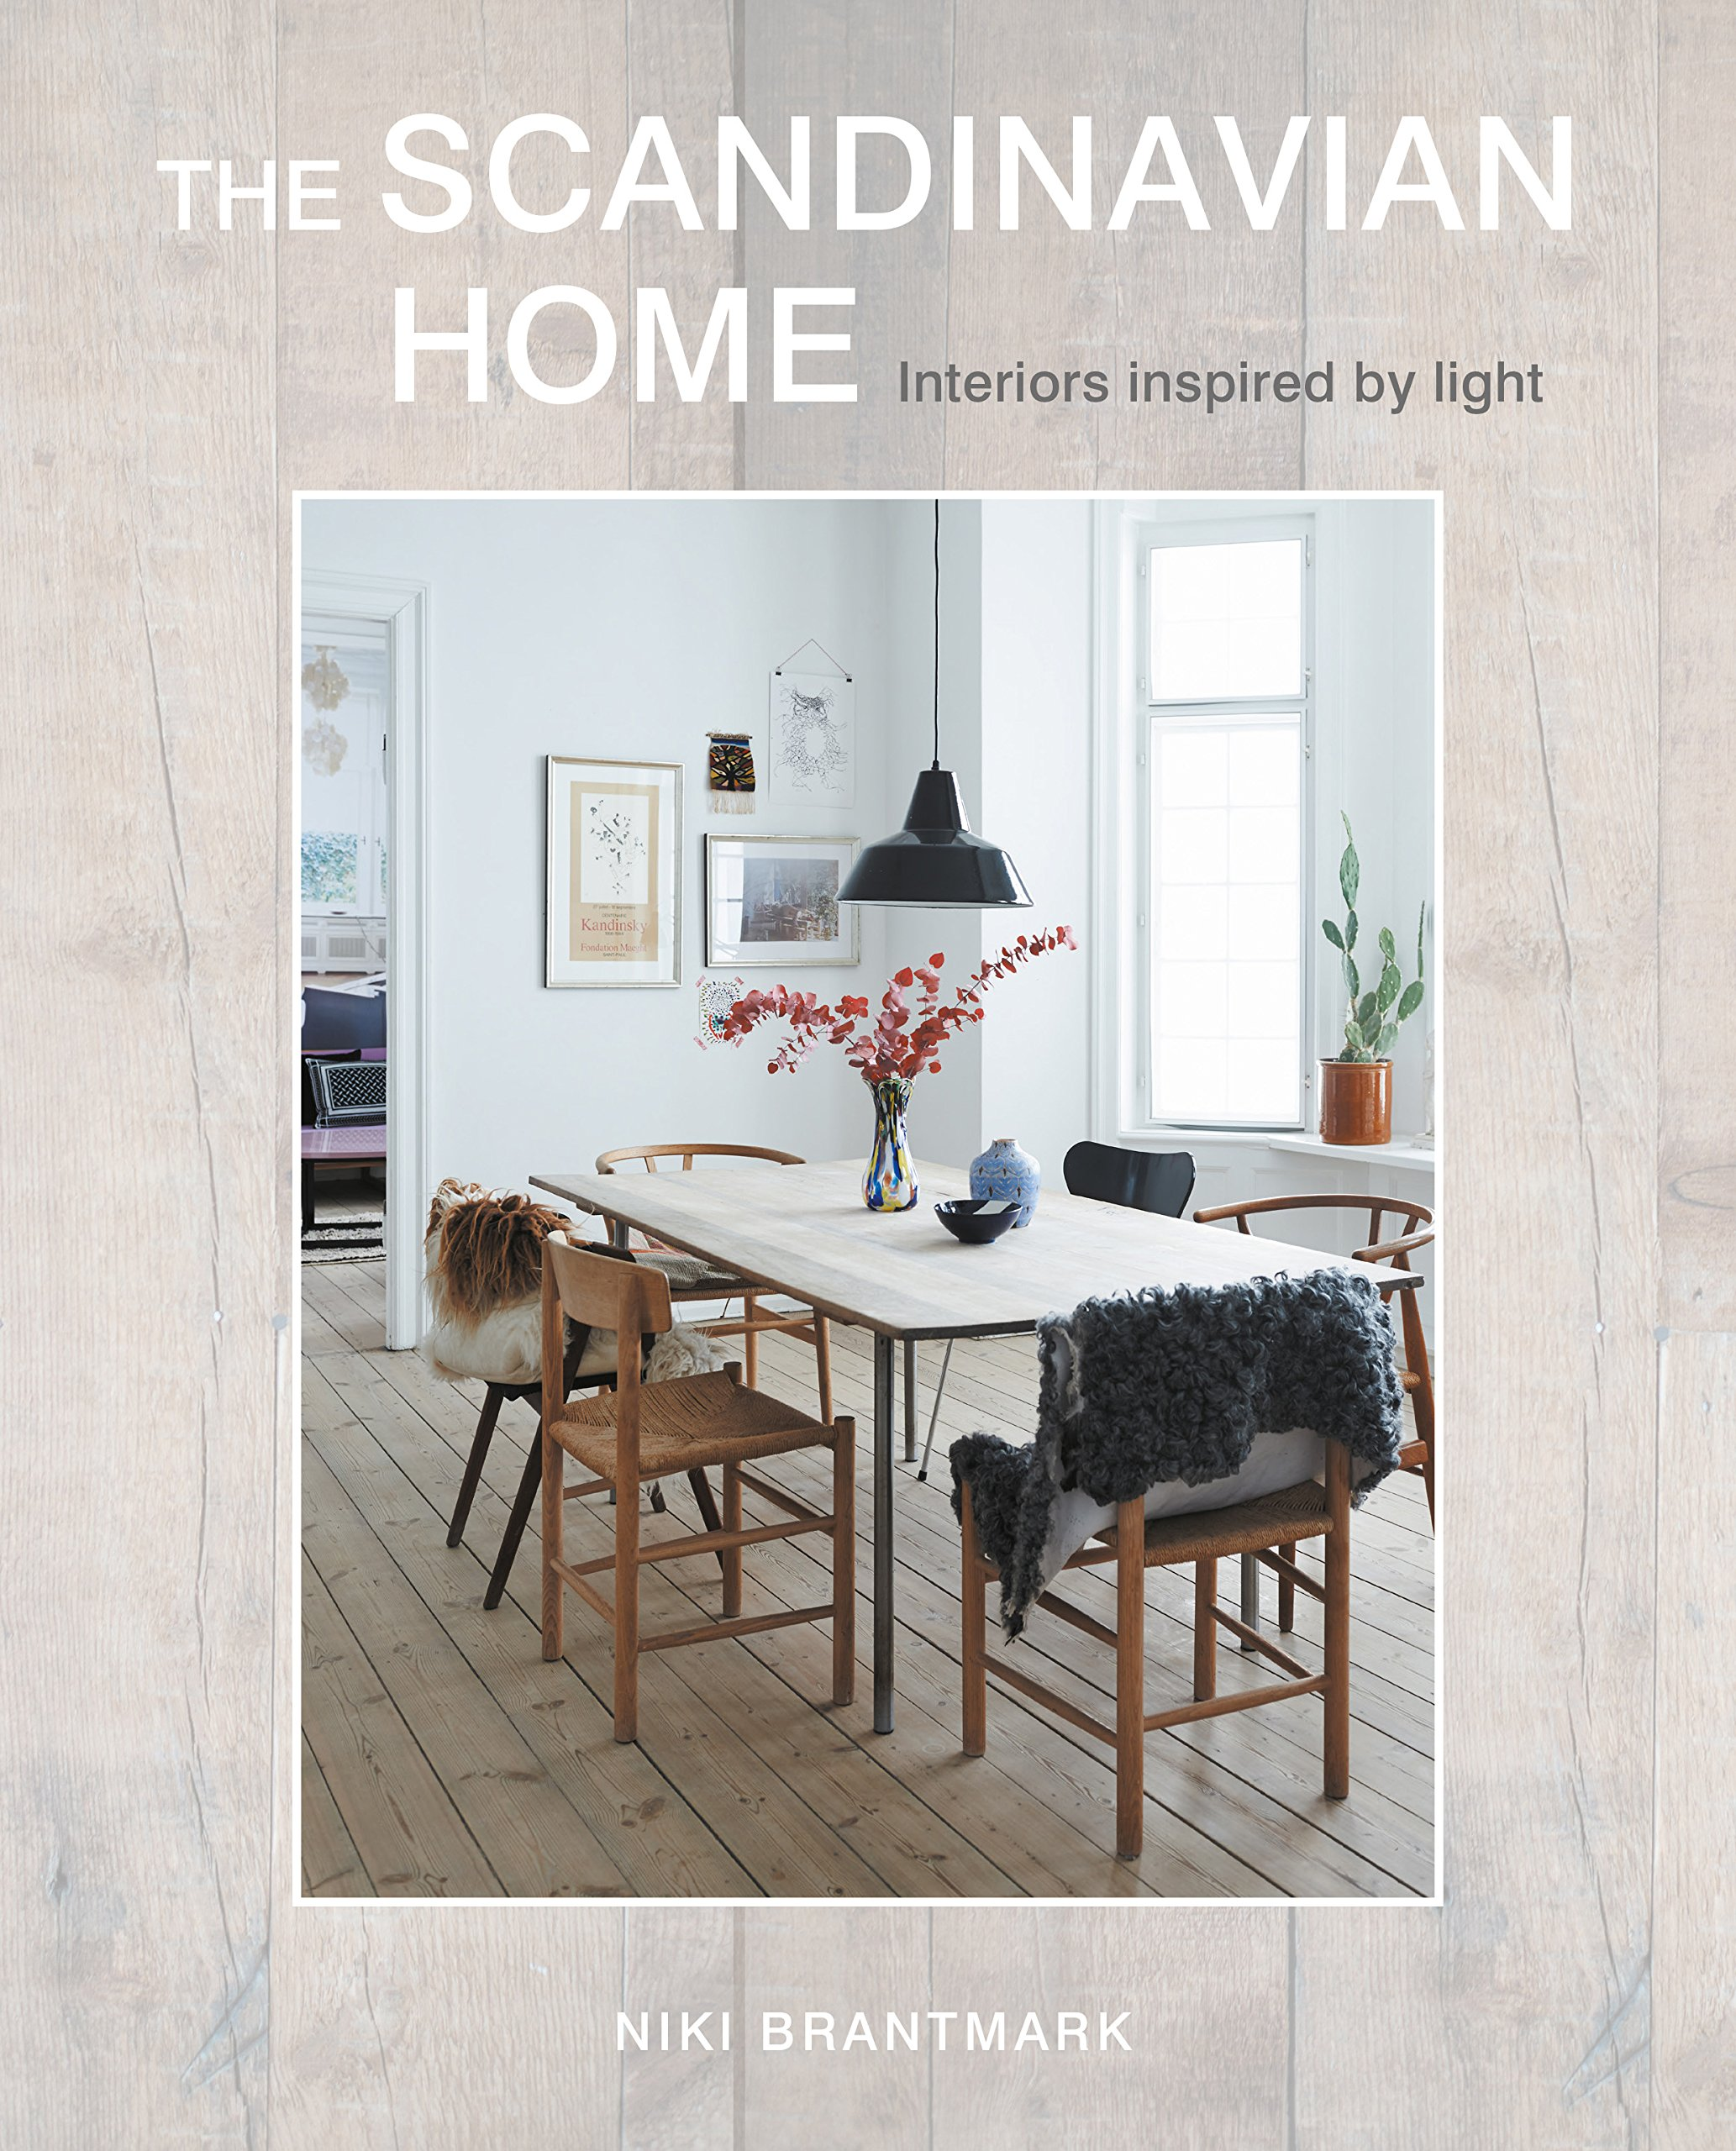 ccpy interior design 34 stunningly scandinavian interior designs home design Follow the Author